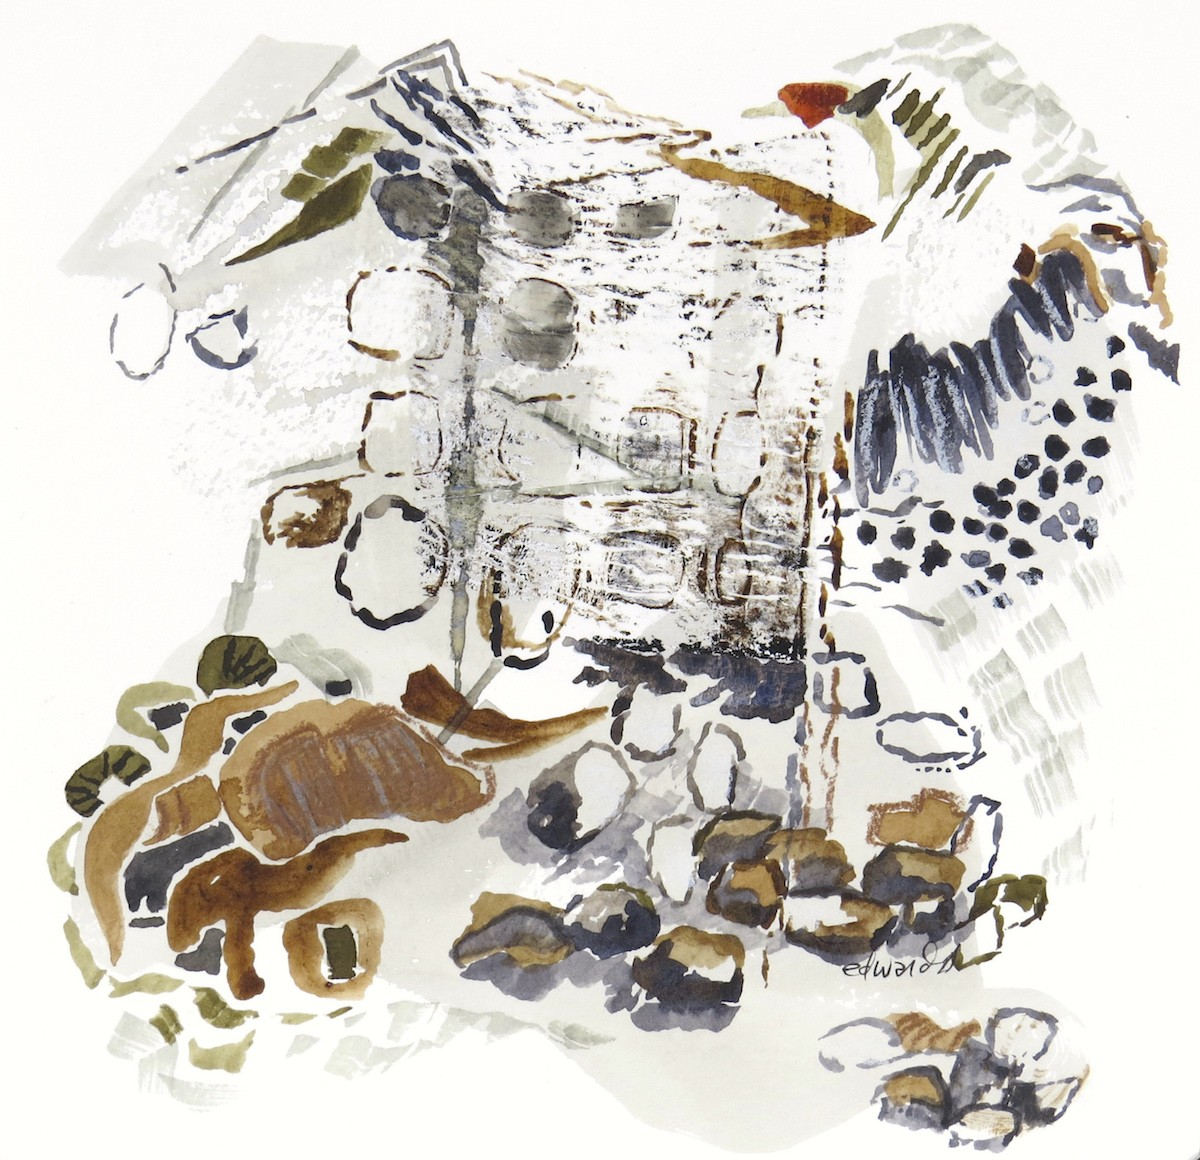 a flicker came by, watercolour with mixed media, Canadian contemporary artist barbra edwards from the Gulf Islands